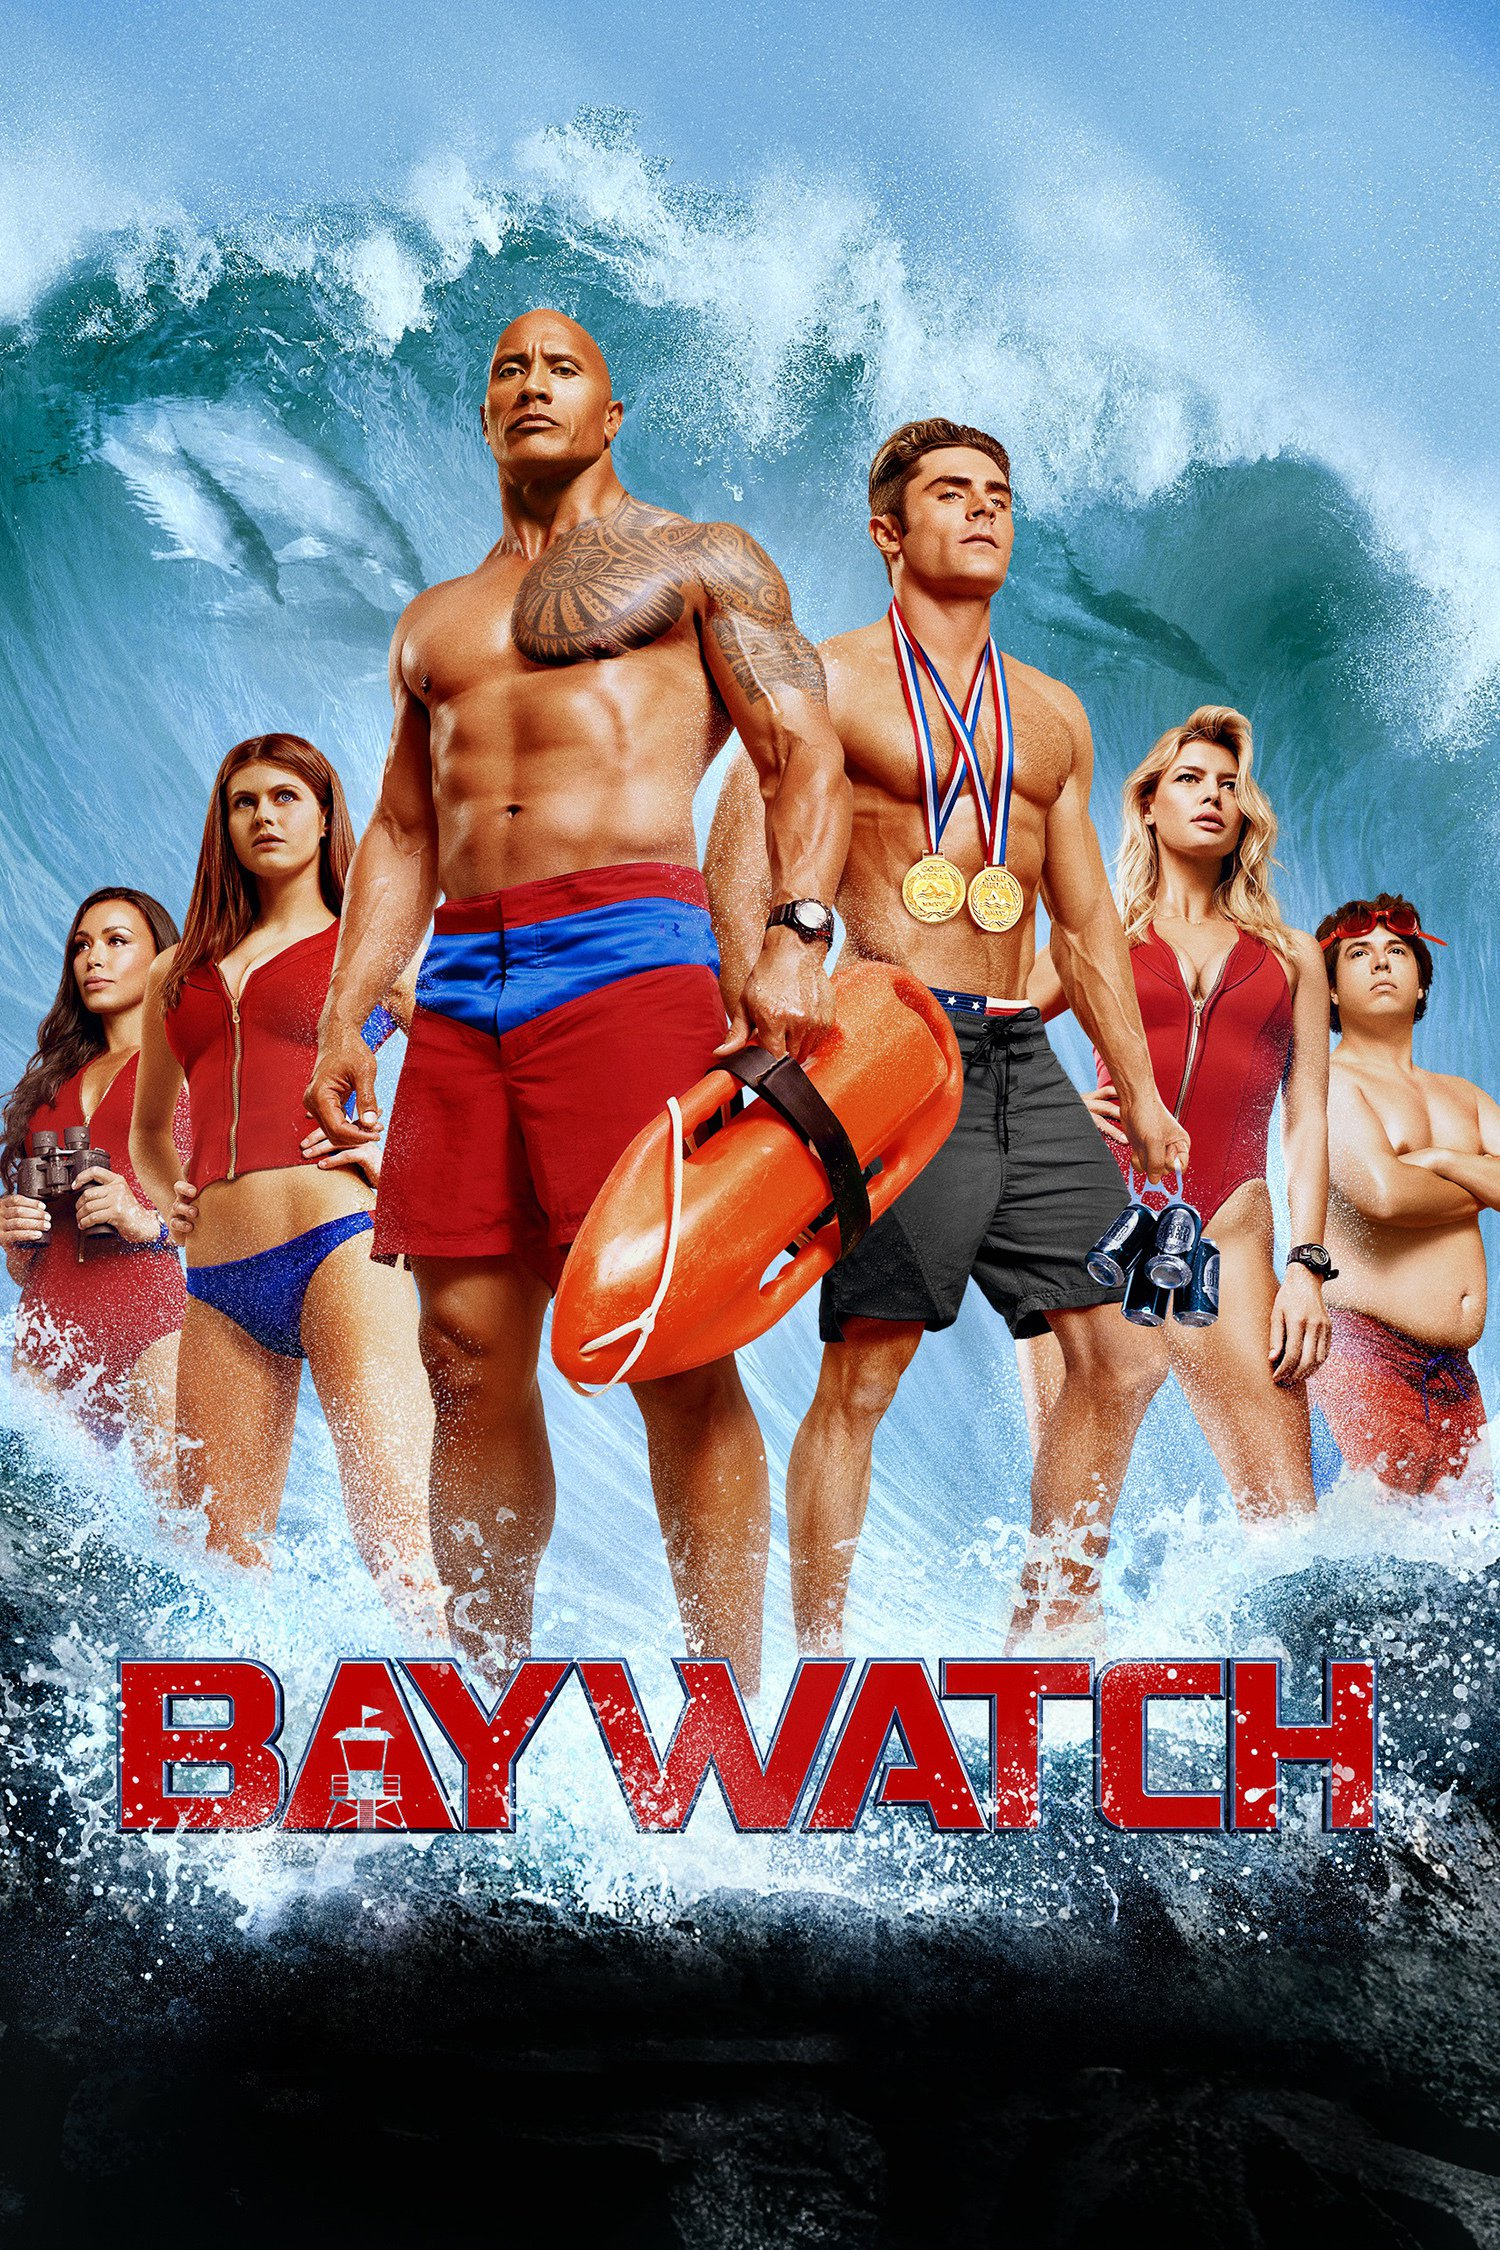 Baywatch - Movie Poster